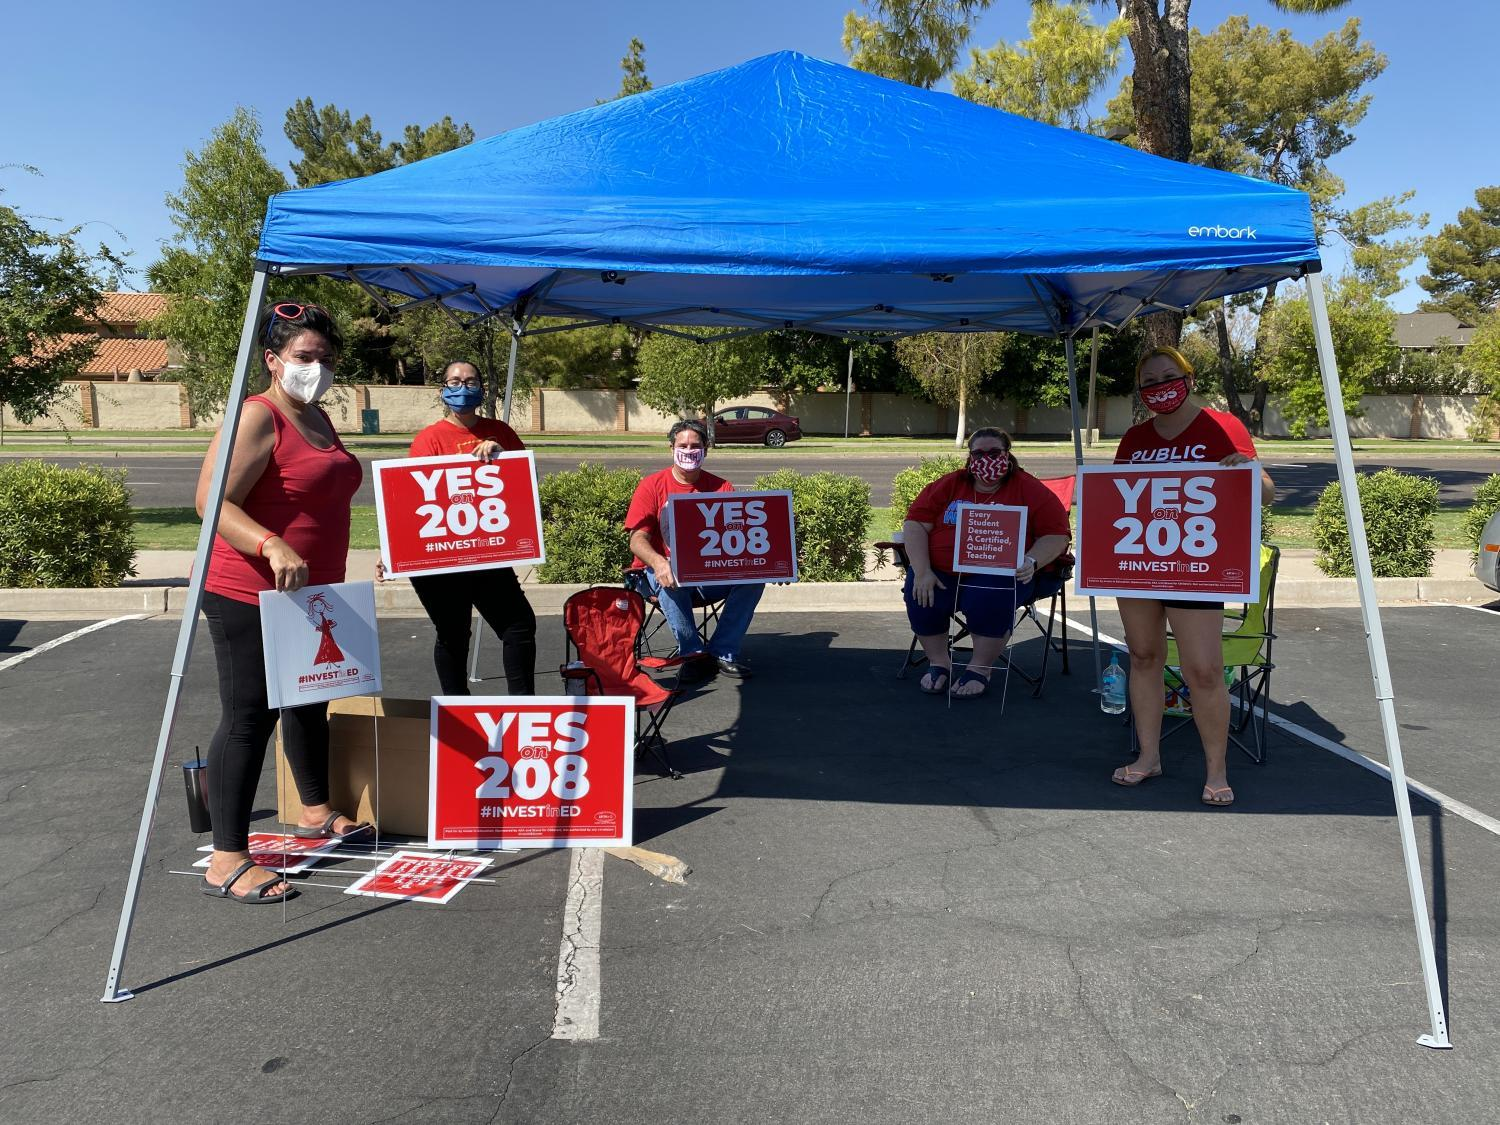 Prop 208 Volunteers